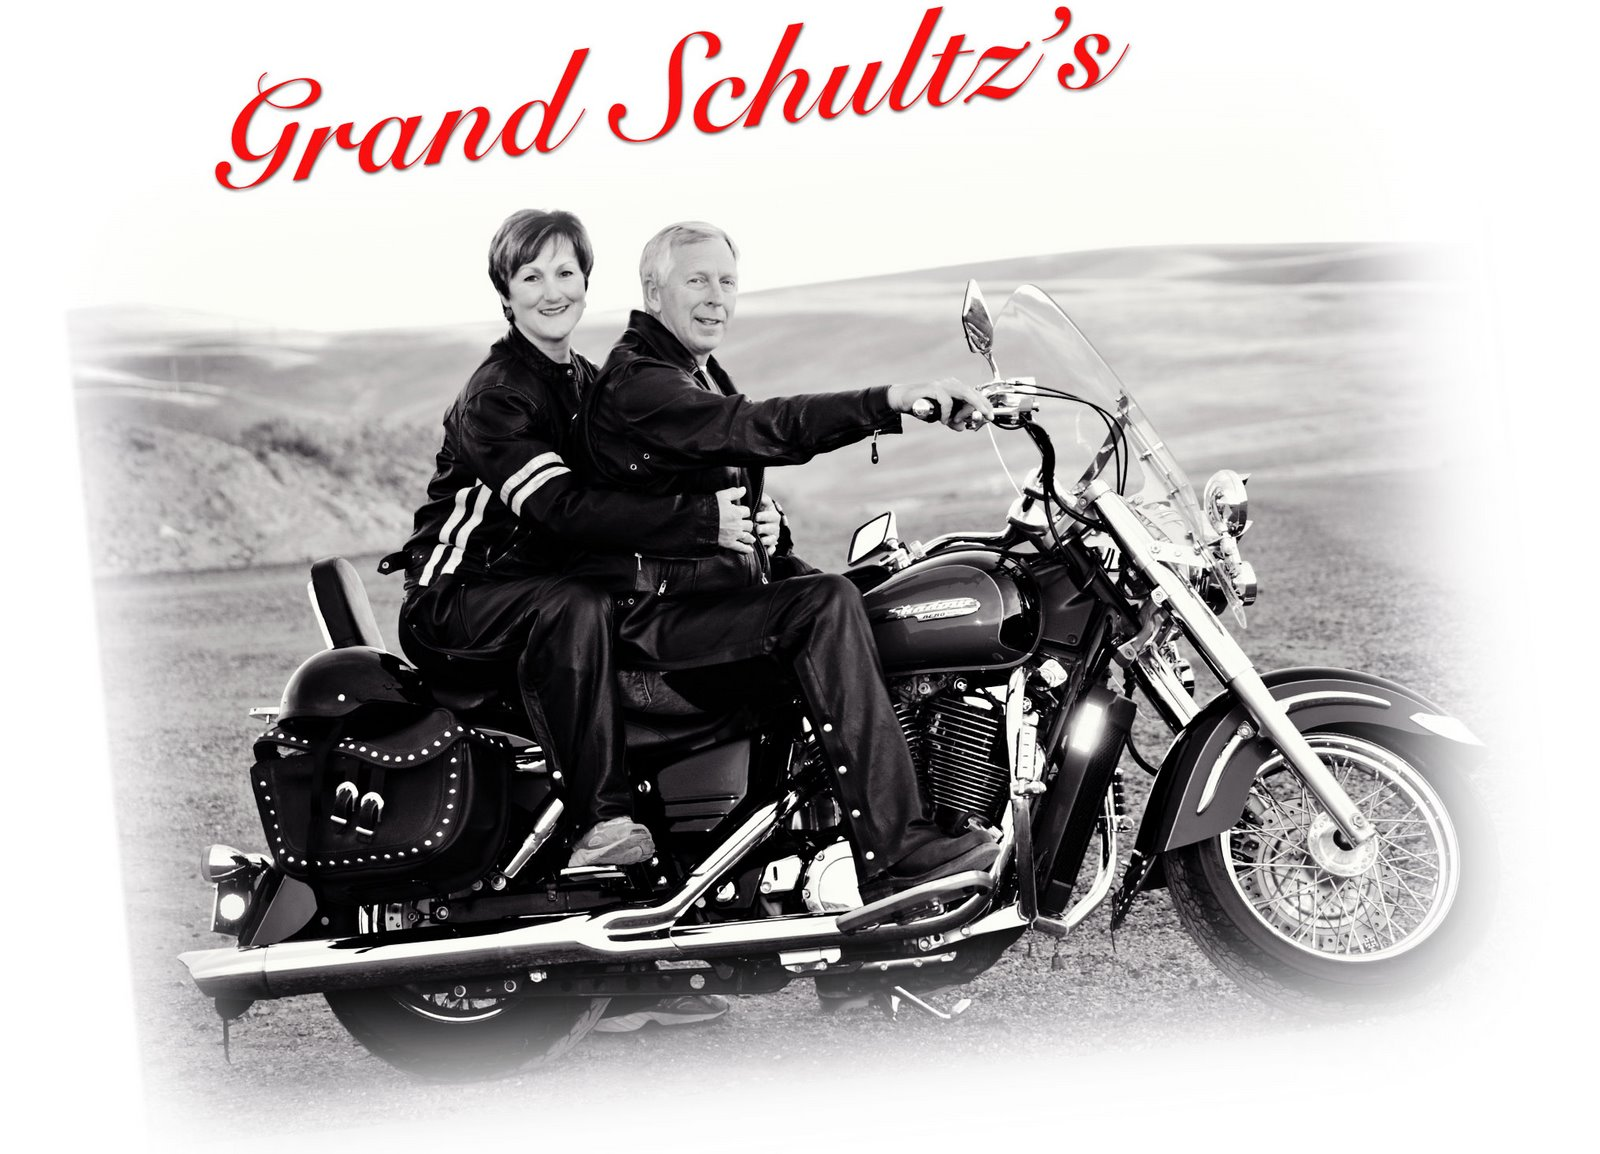 Grandpa and Grandma Schultz